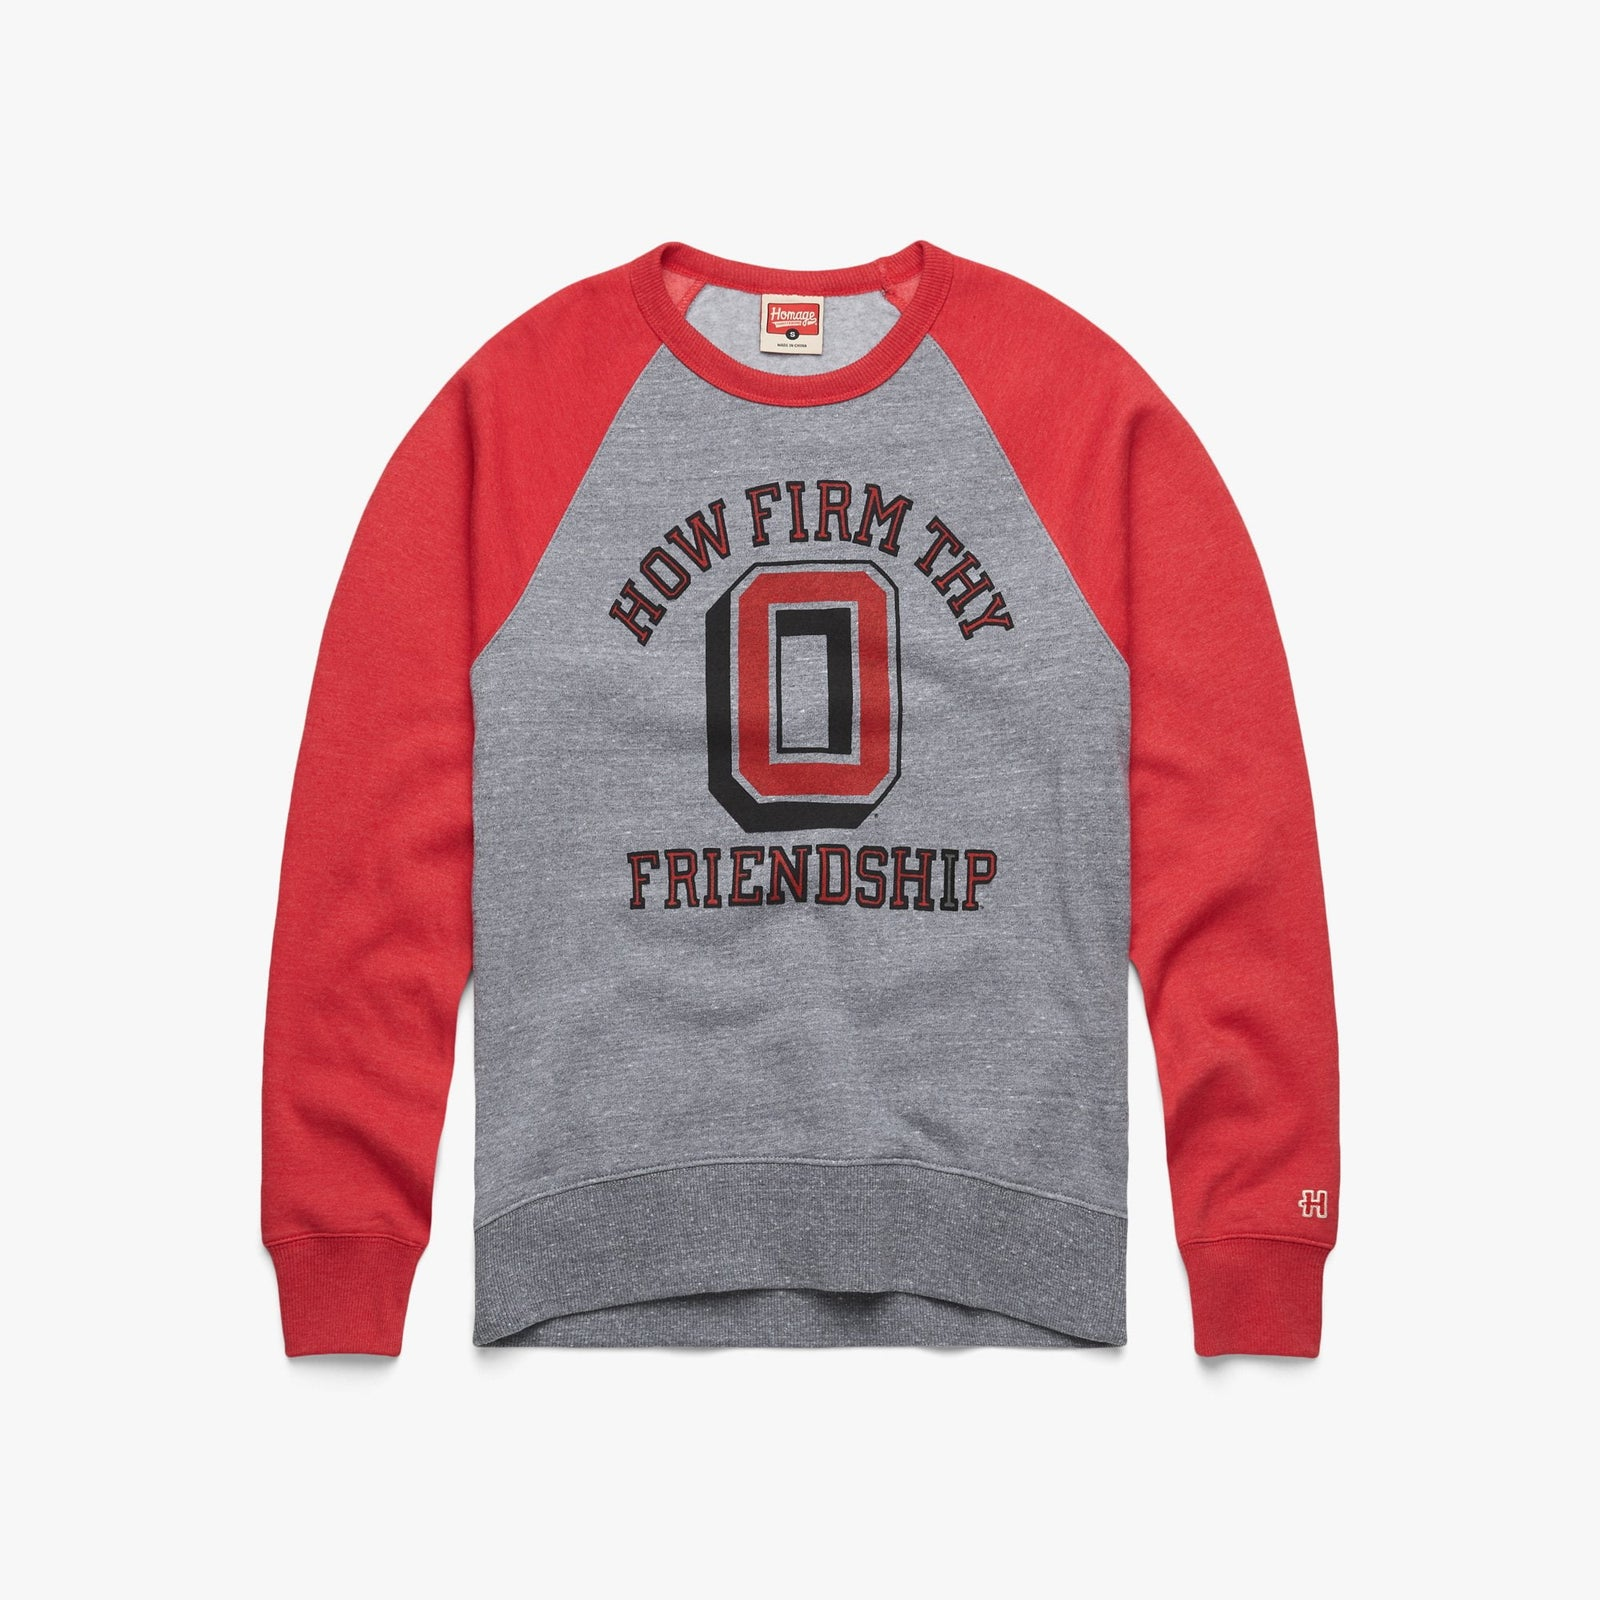 How Firm Thy Friendship Crewneck